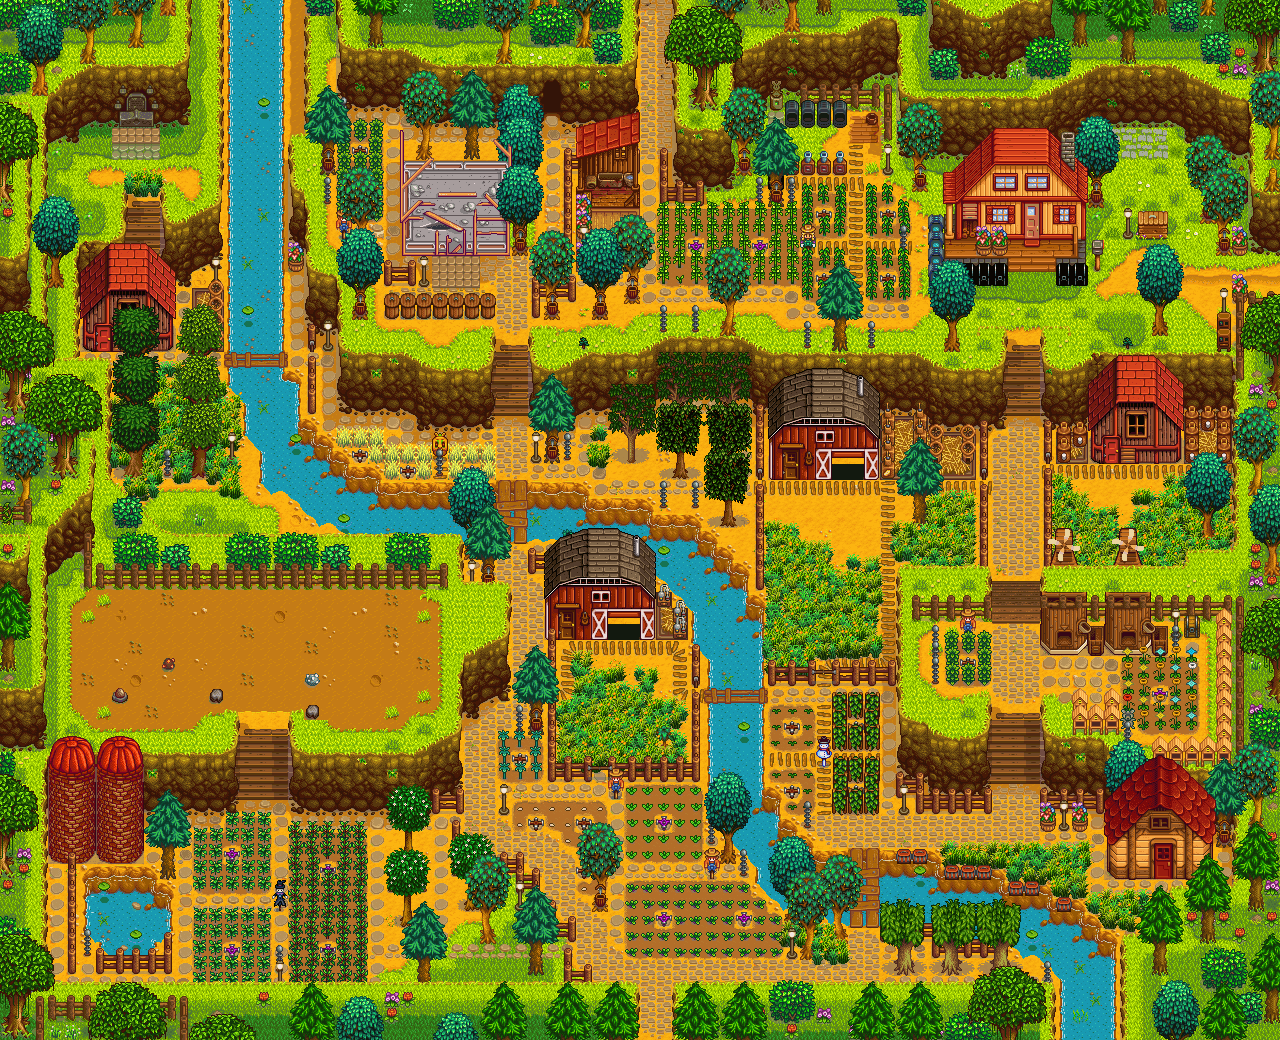 What S Your Preferred Farm I Can T Decide What To Use In New Game Stardewvalley Stardew Valley Stardew Valley Farms Stardew Valley Layout